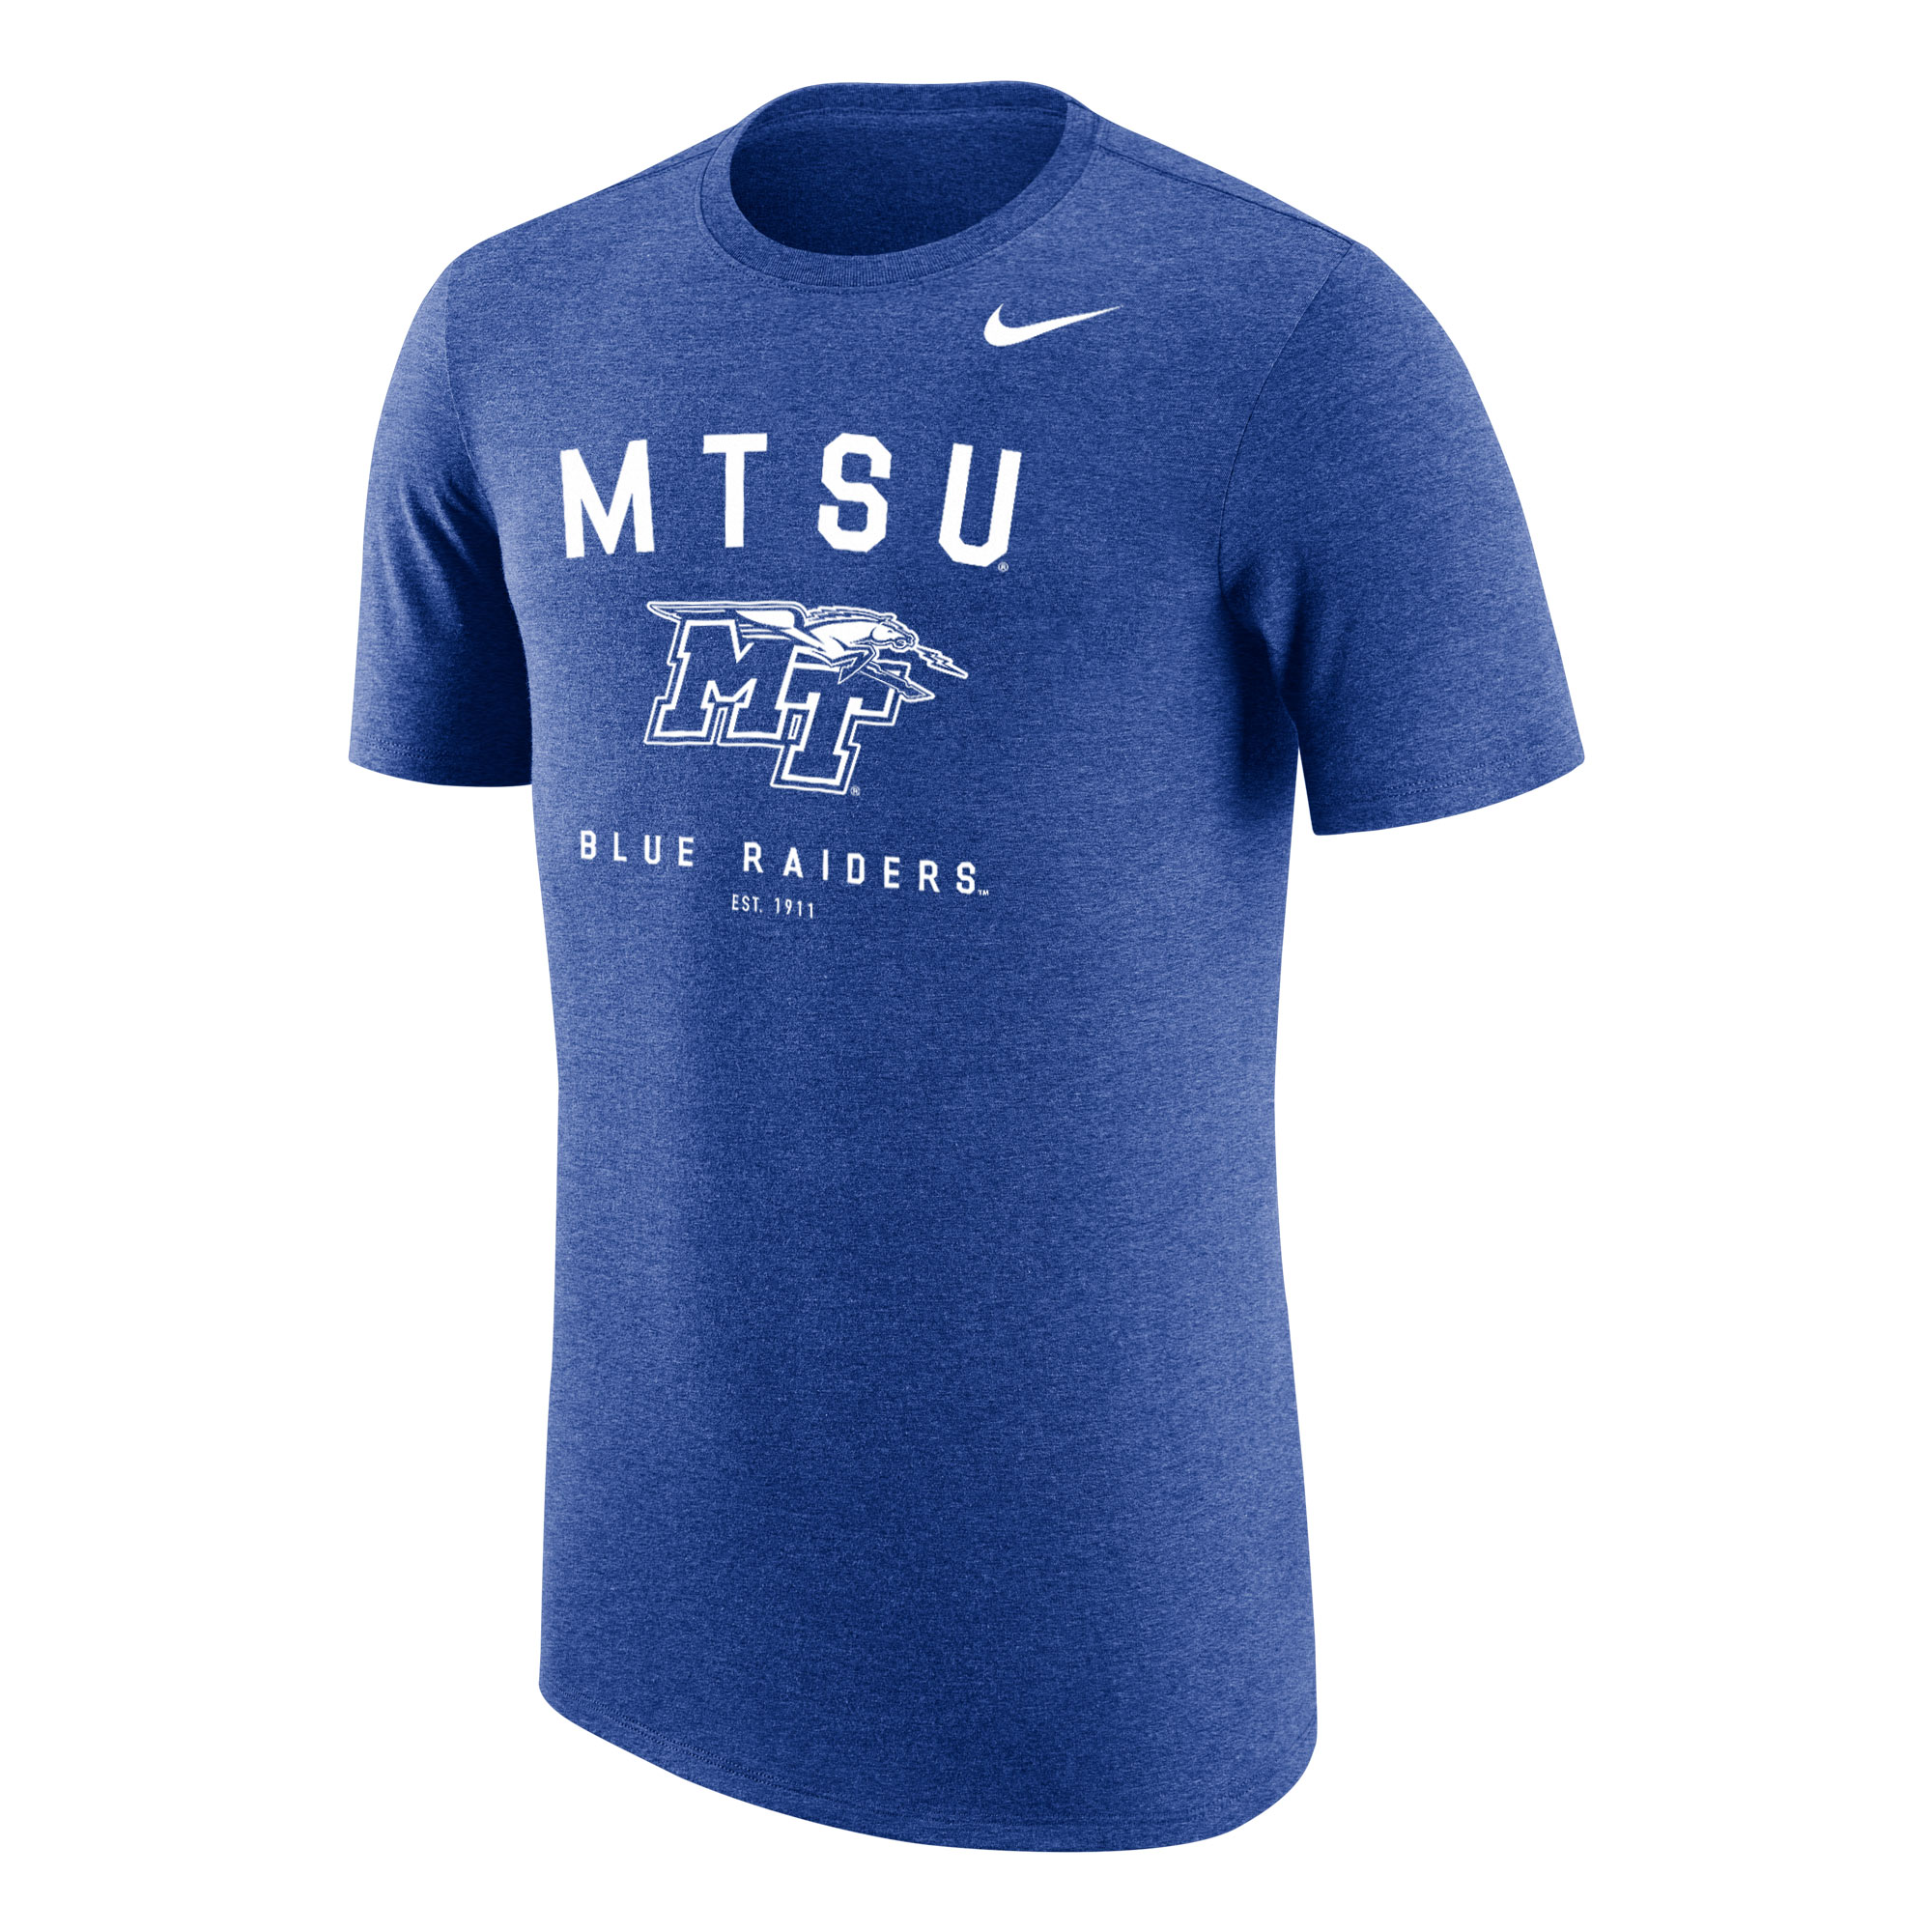 MTSU Arched Type Blue Raiders Triblend Nike® Tshirt